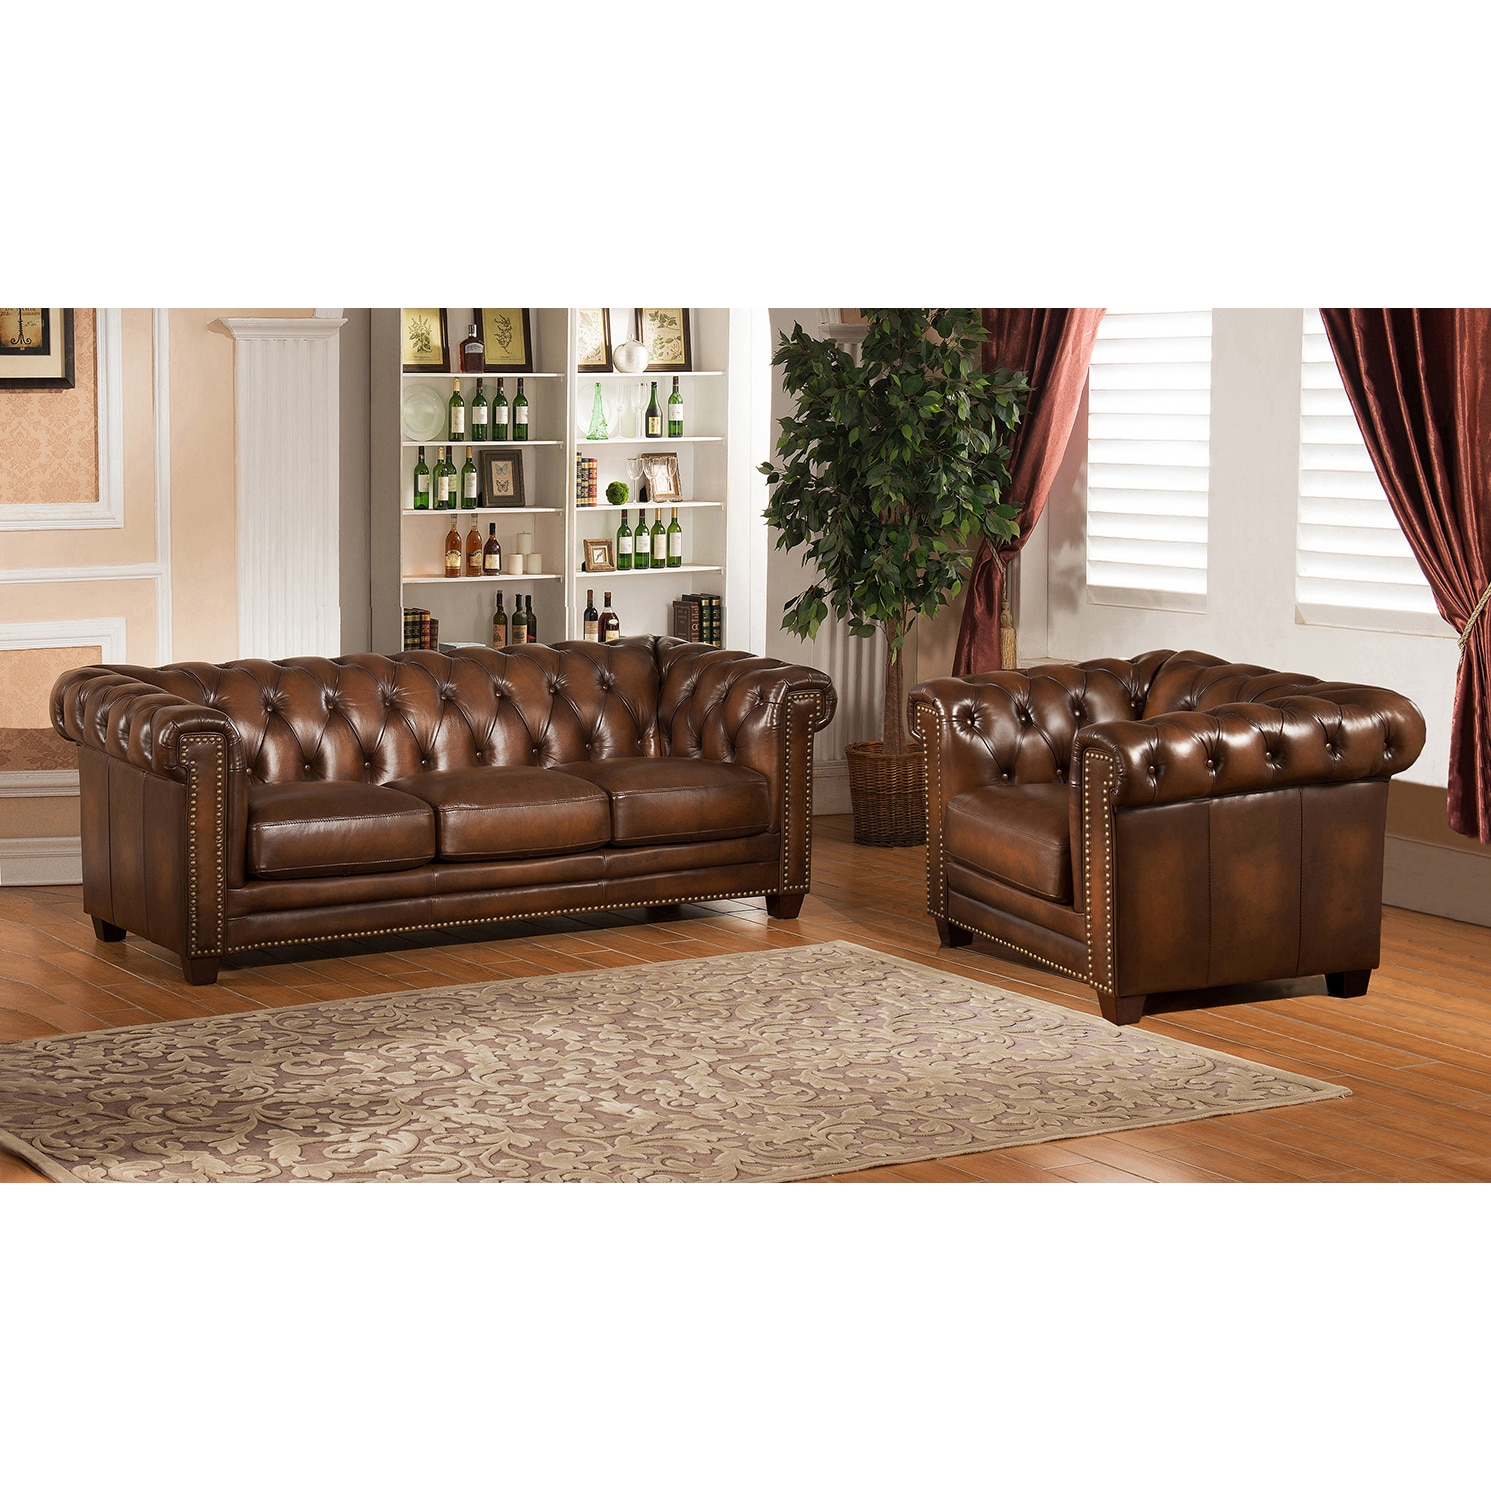 Shop Hickory Brown Leather Chesterfield Sofa and Chair Set - Free ...